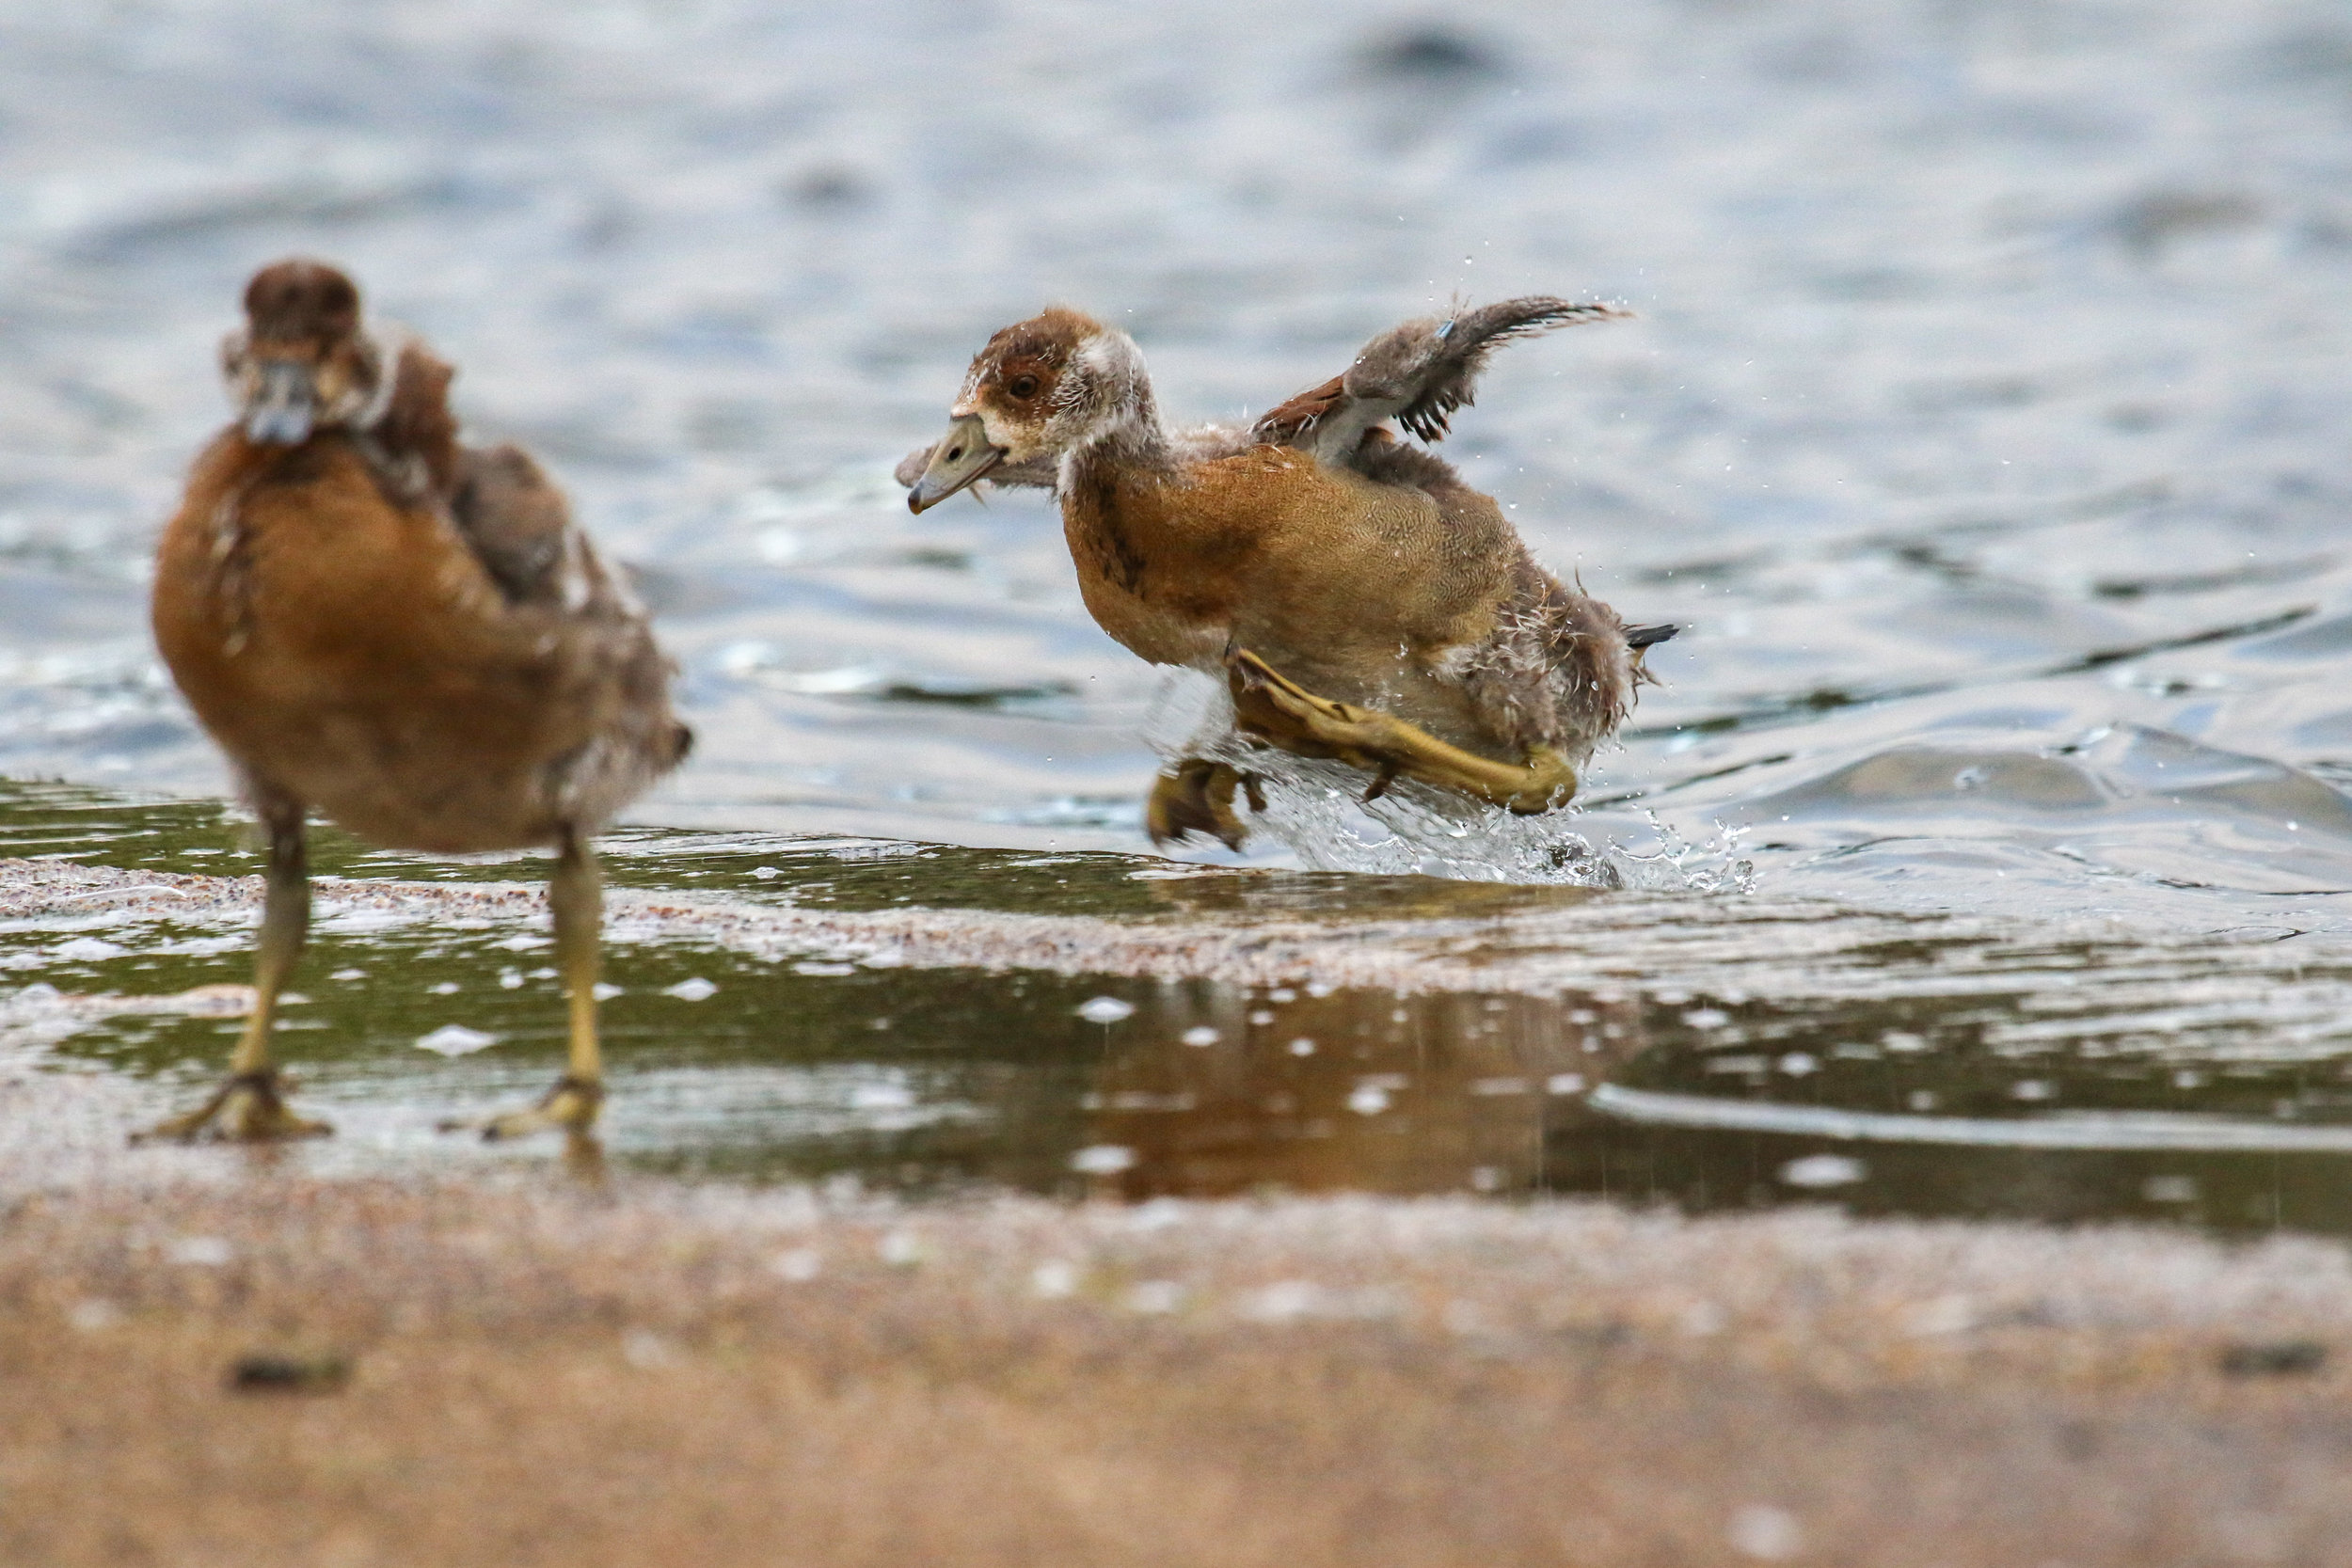 egyptian gosling coming out of water goose london hyde park (1 of 1).jpg